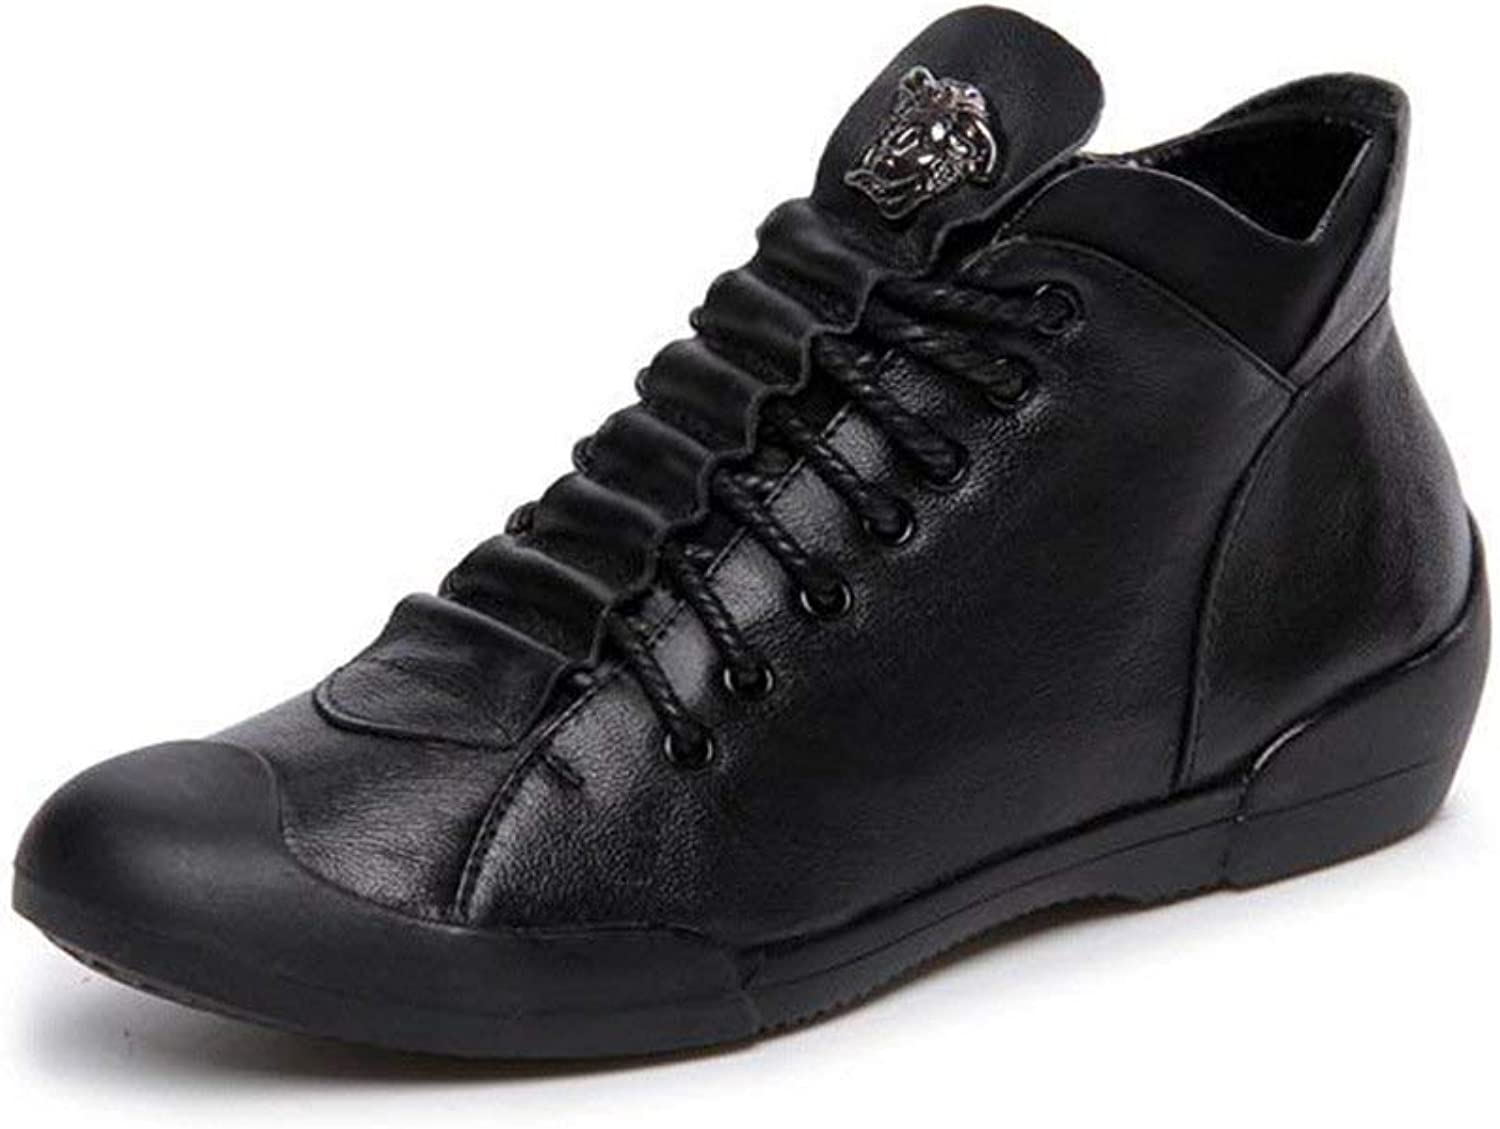 Boolee Women's High Top Genuine Leather Wedges Lace-up Flat Sneakers